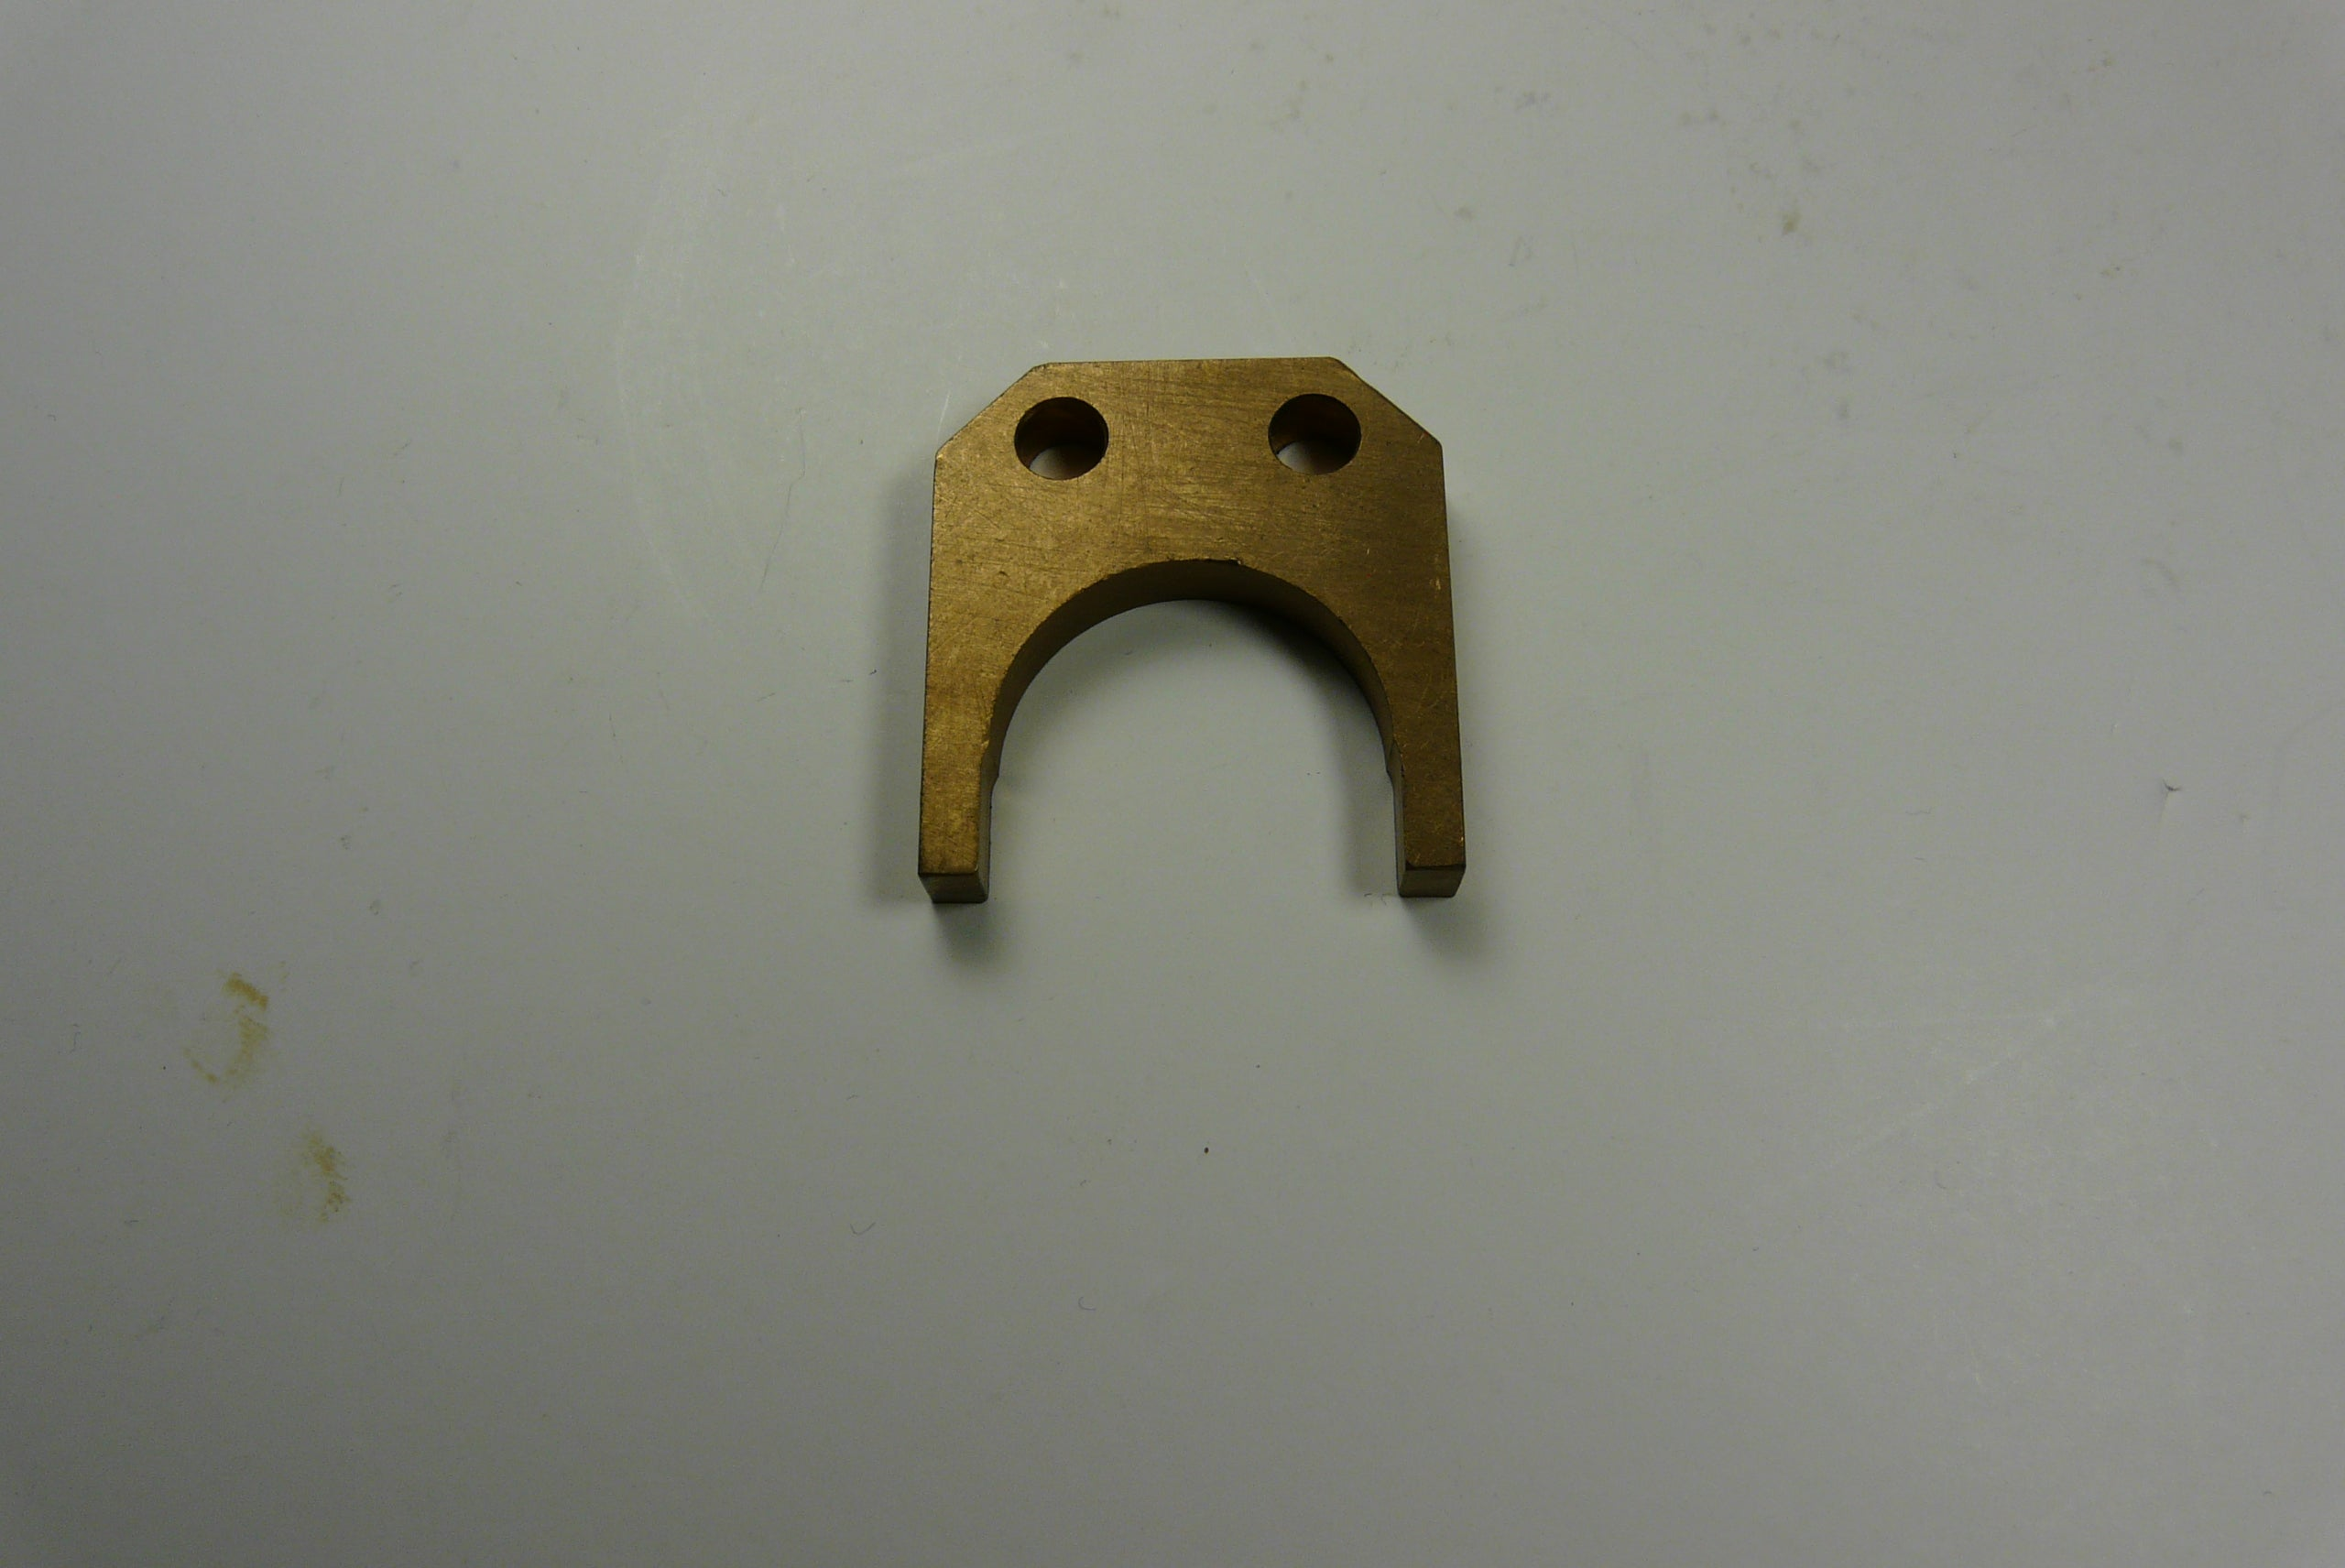 Mitsubishi Bearing Housing Part# KG00454-Brass